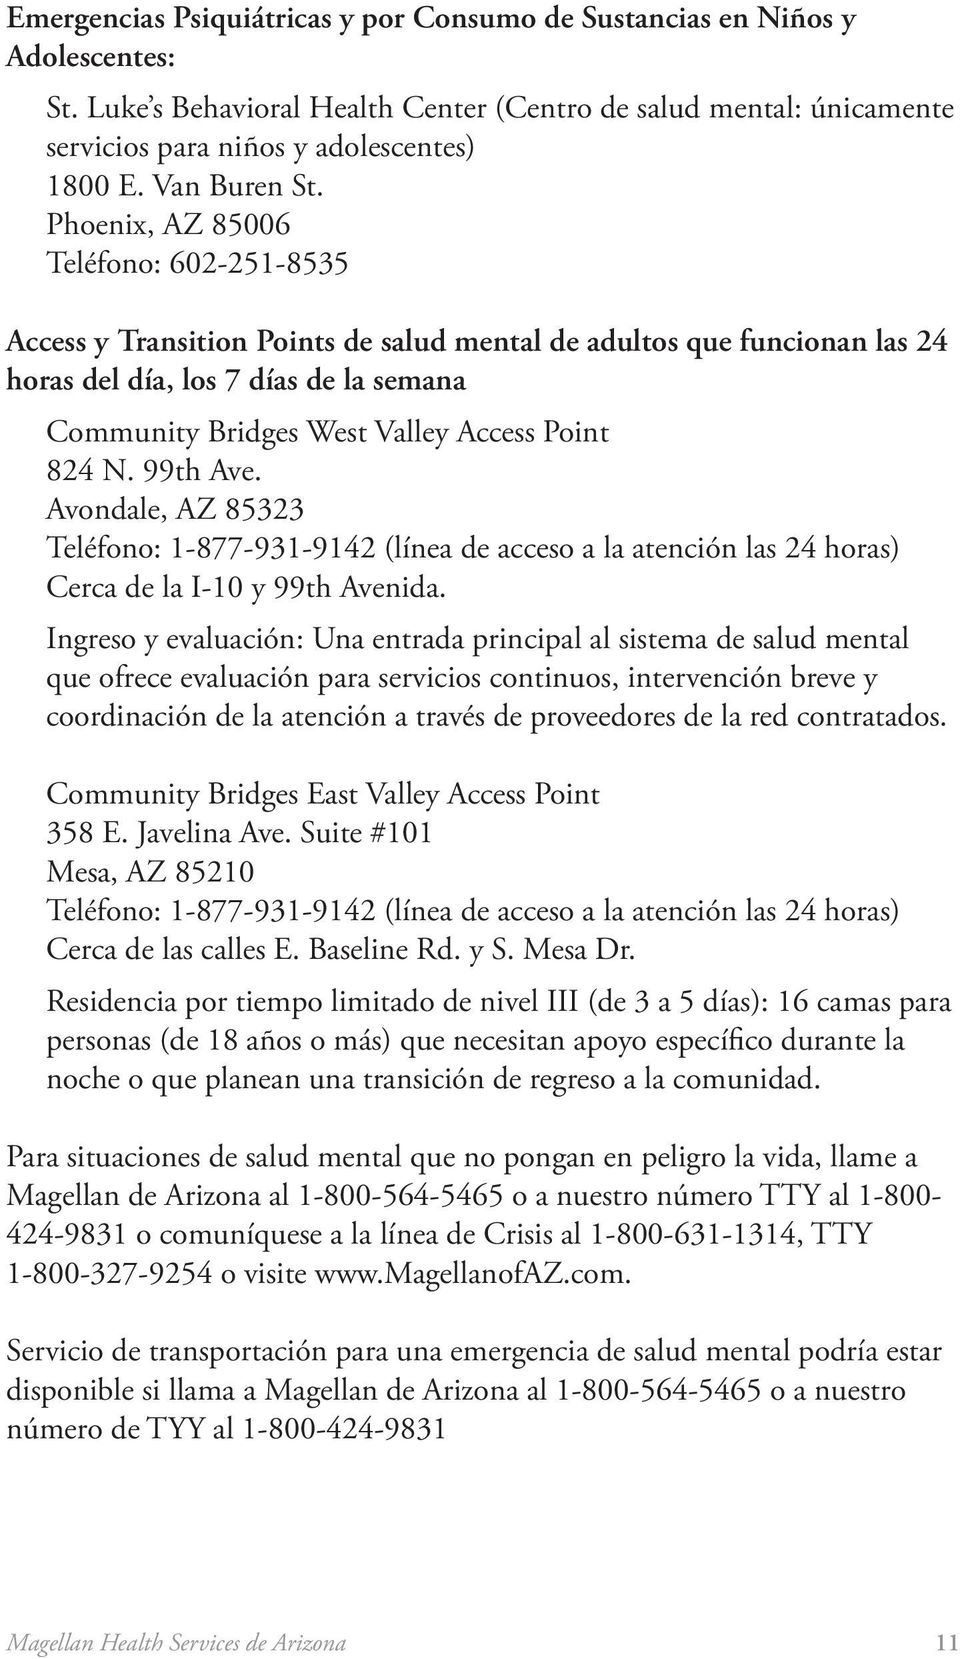 Phoenix, AZ 85006 Teléfono: 602-251-8535 Access y Transition Points de salud mental de adultos que funcionan las 24 horas del día, los 7 días de la semana Community Bridges West Valley Access Point